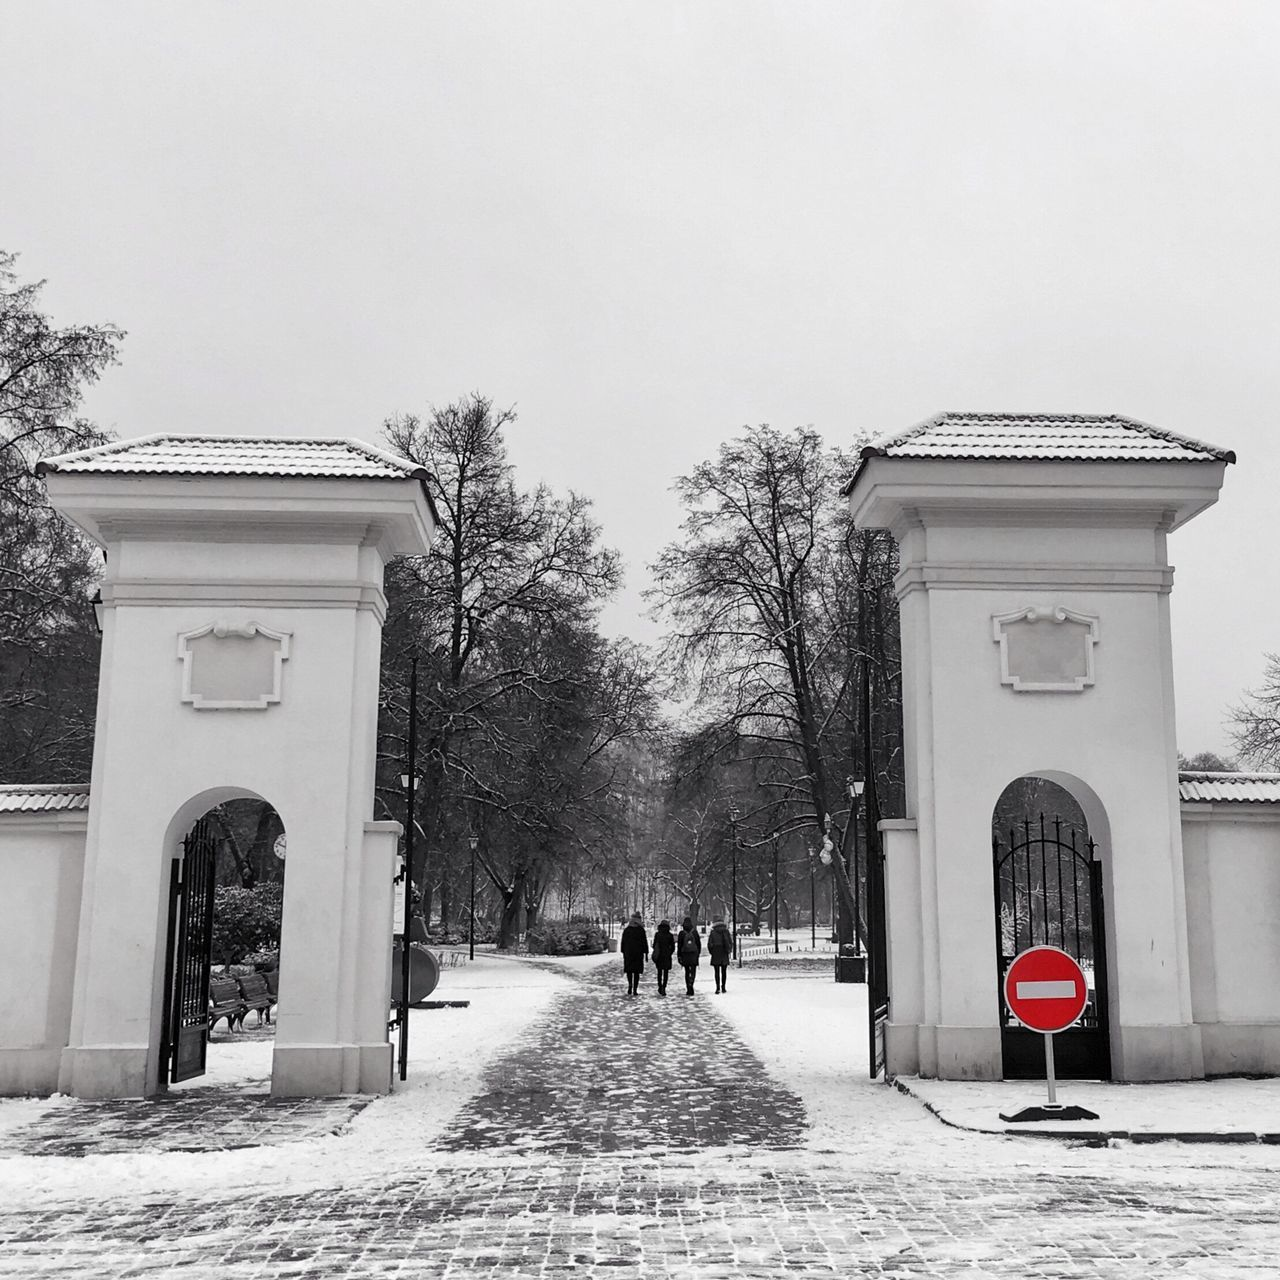 built structure, architecture, building exterior, day, tree, outdoors, arch, real people, snow, nature, clear sky, sky